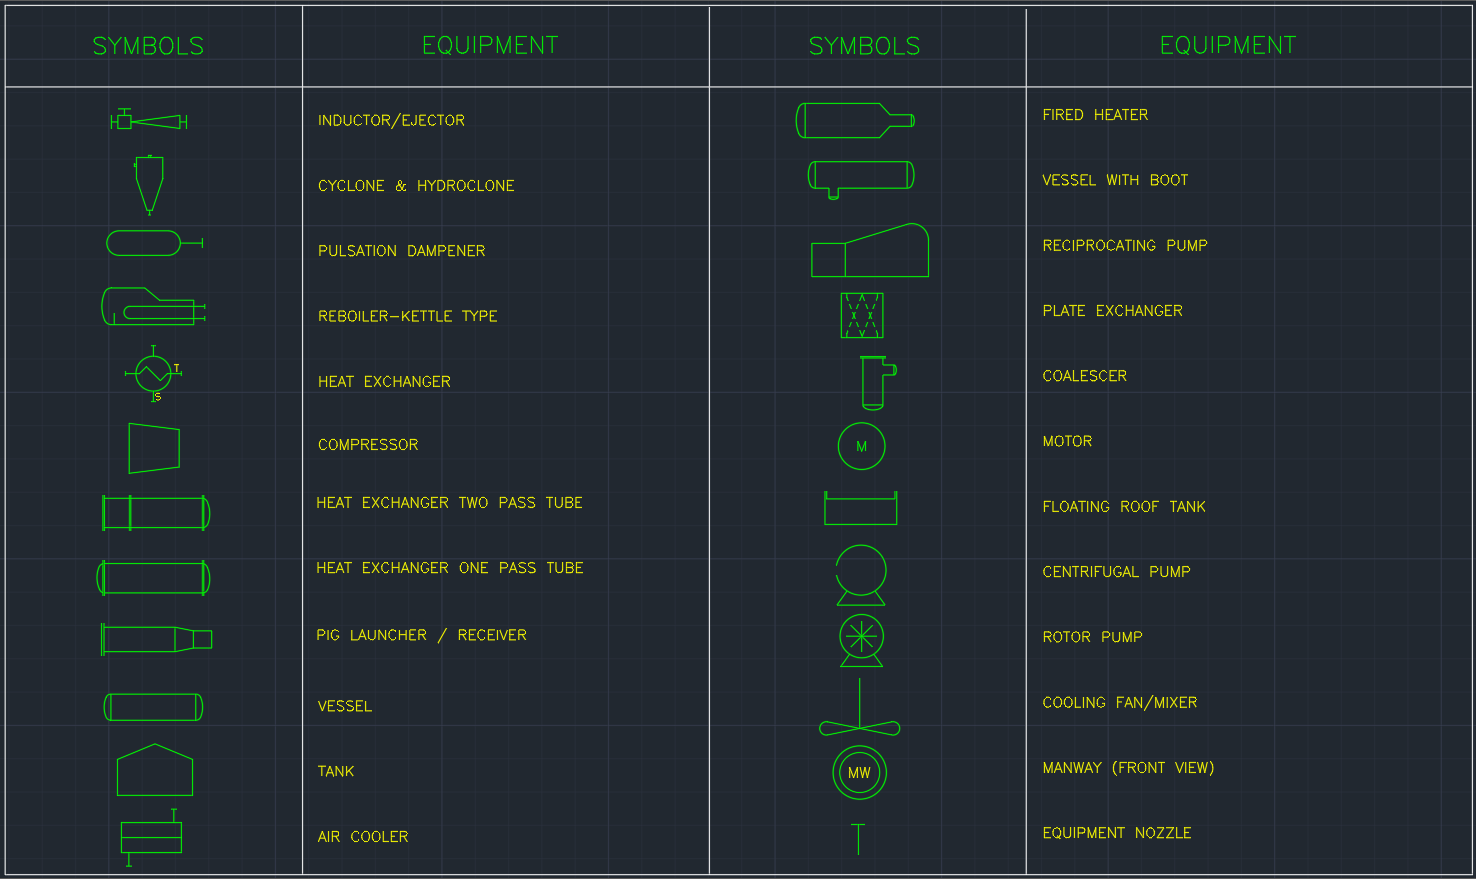 Process Equipment Symbols Free Cad Blocks And Cad Drawing